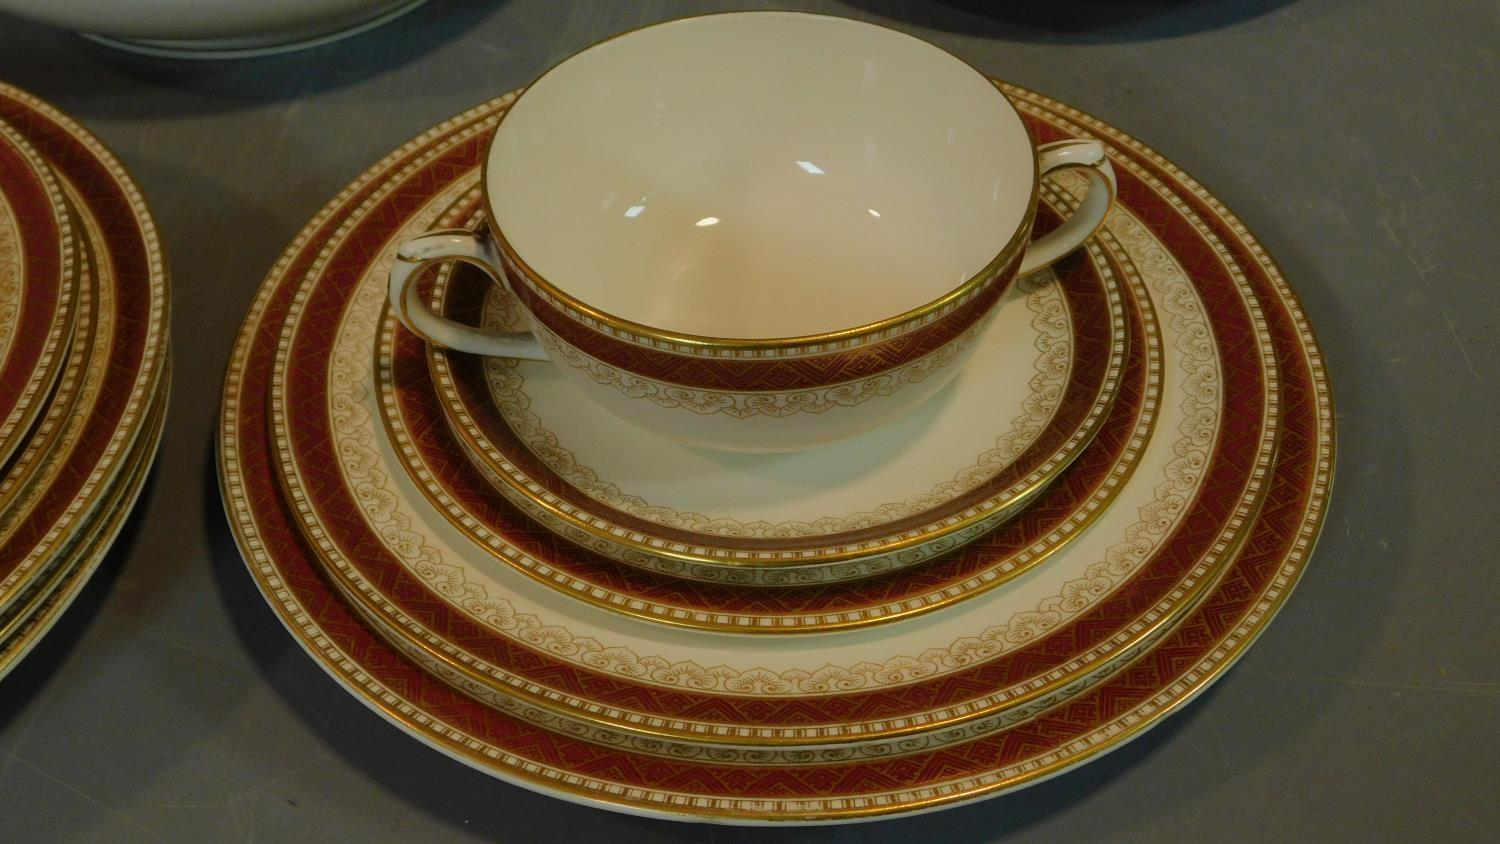 A Loselware part dinner service, dinner plates, side plates, soup bowls, tureens etc. - Image 3 of 6